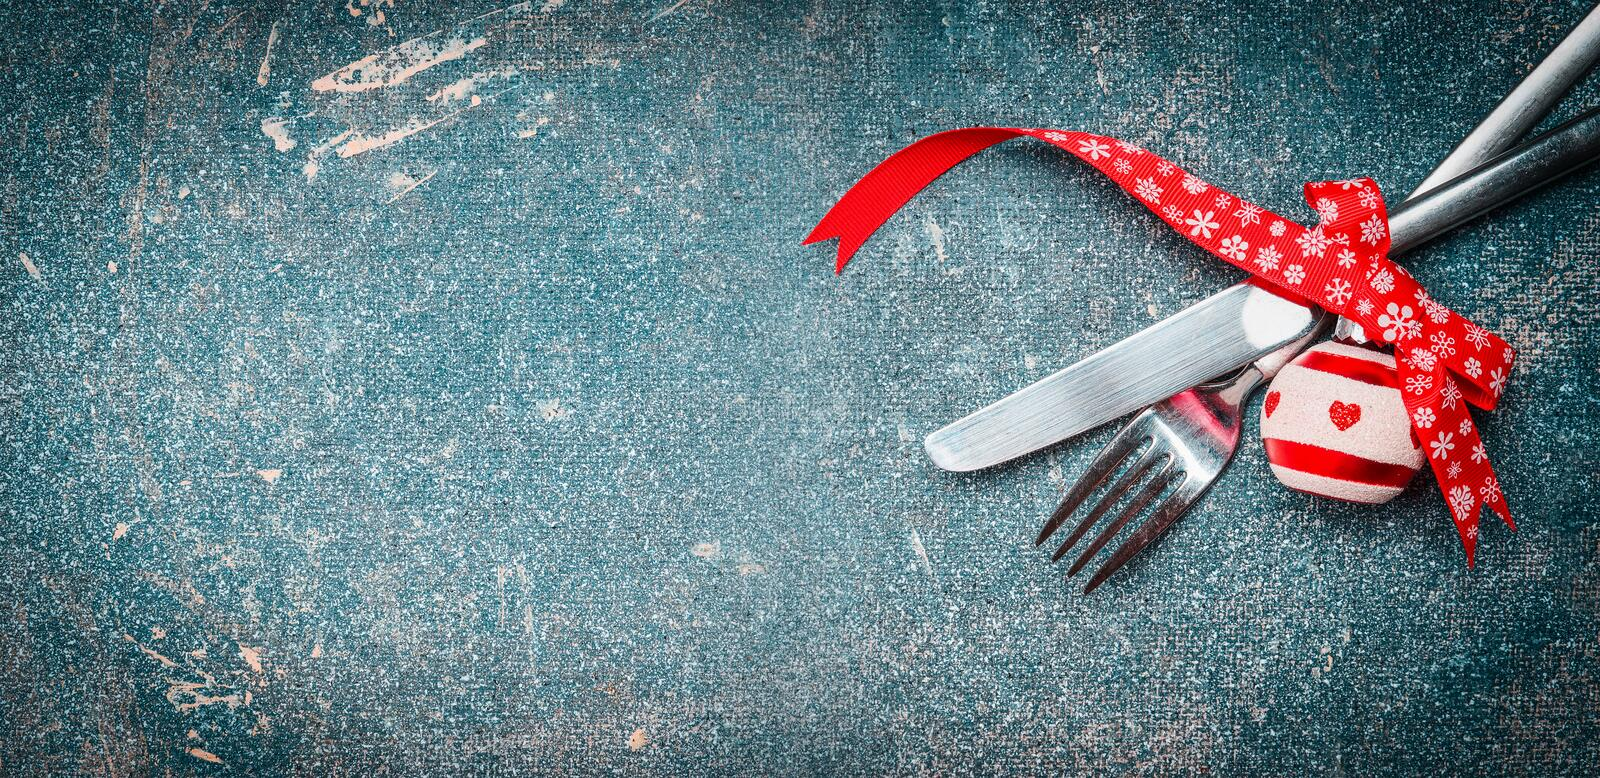 Christmas food background with table place setting: fork, knife and festive decoration royalty free stock photos